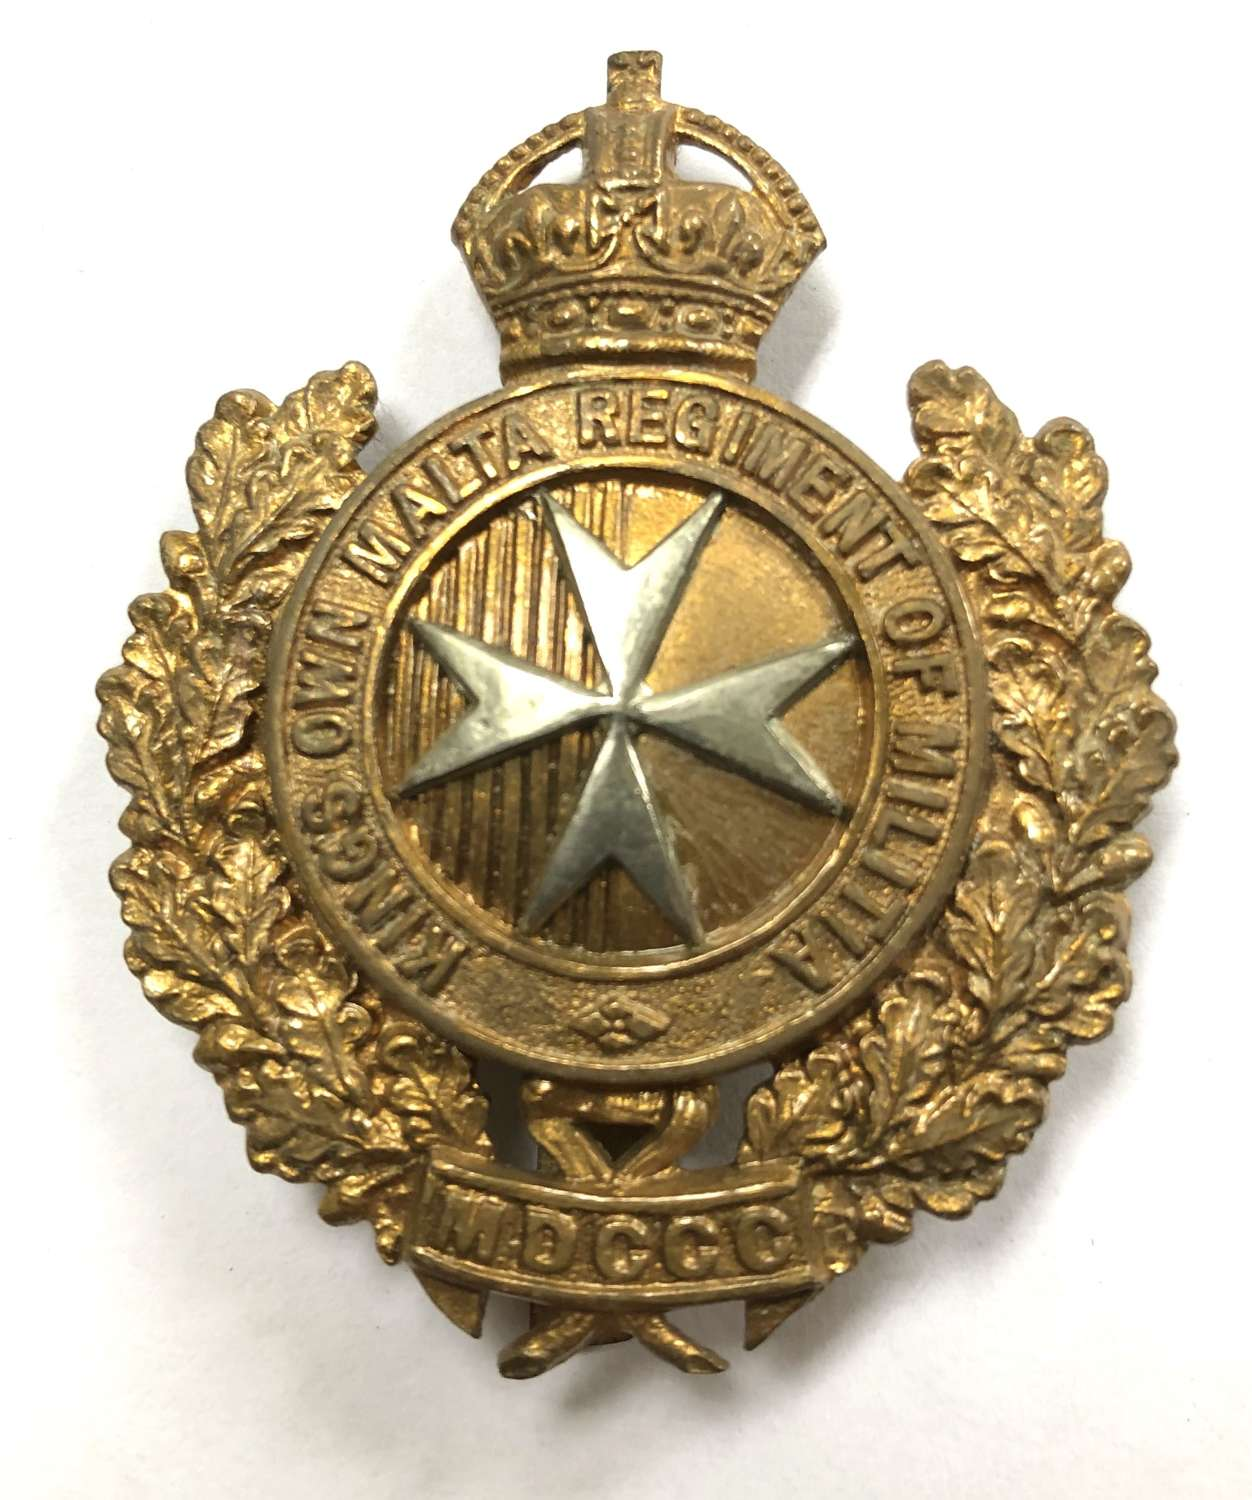 King's Own Malta Regiment of Militia cap badge circa 1903-21